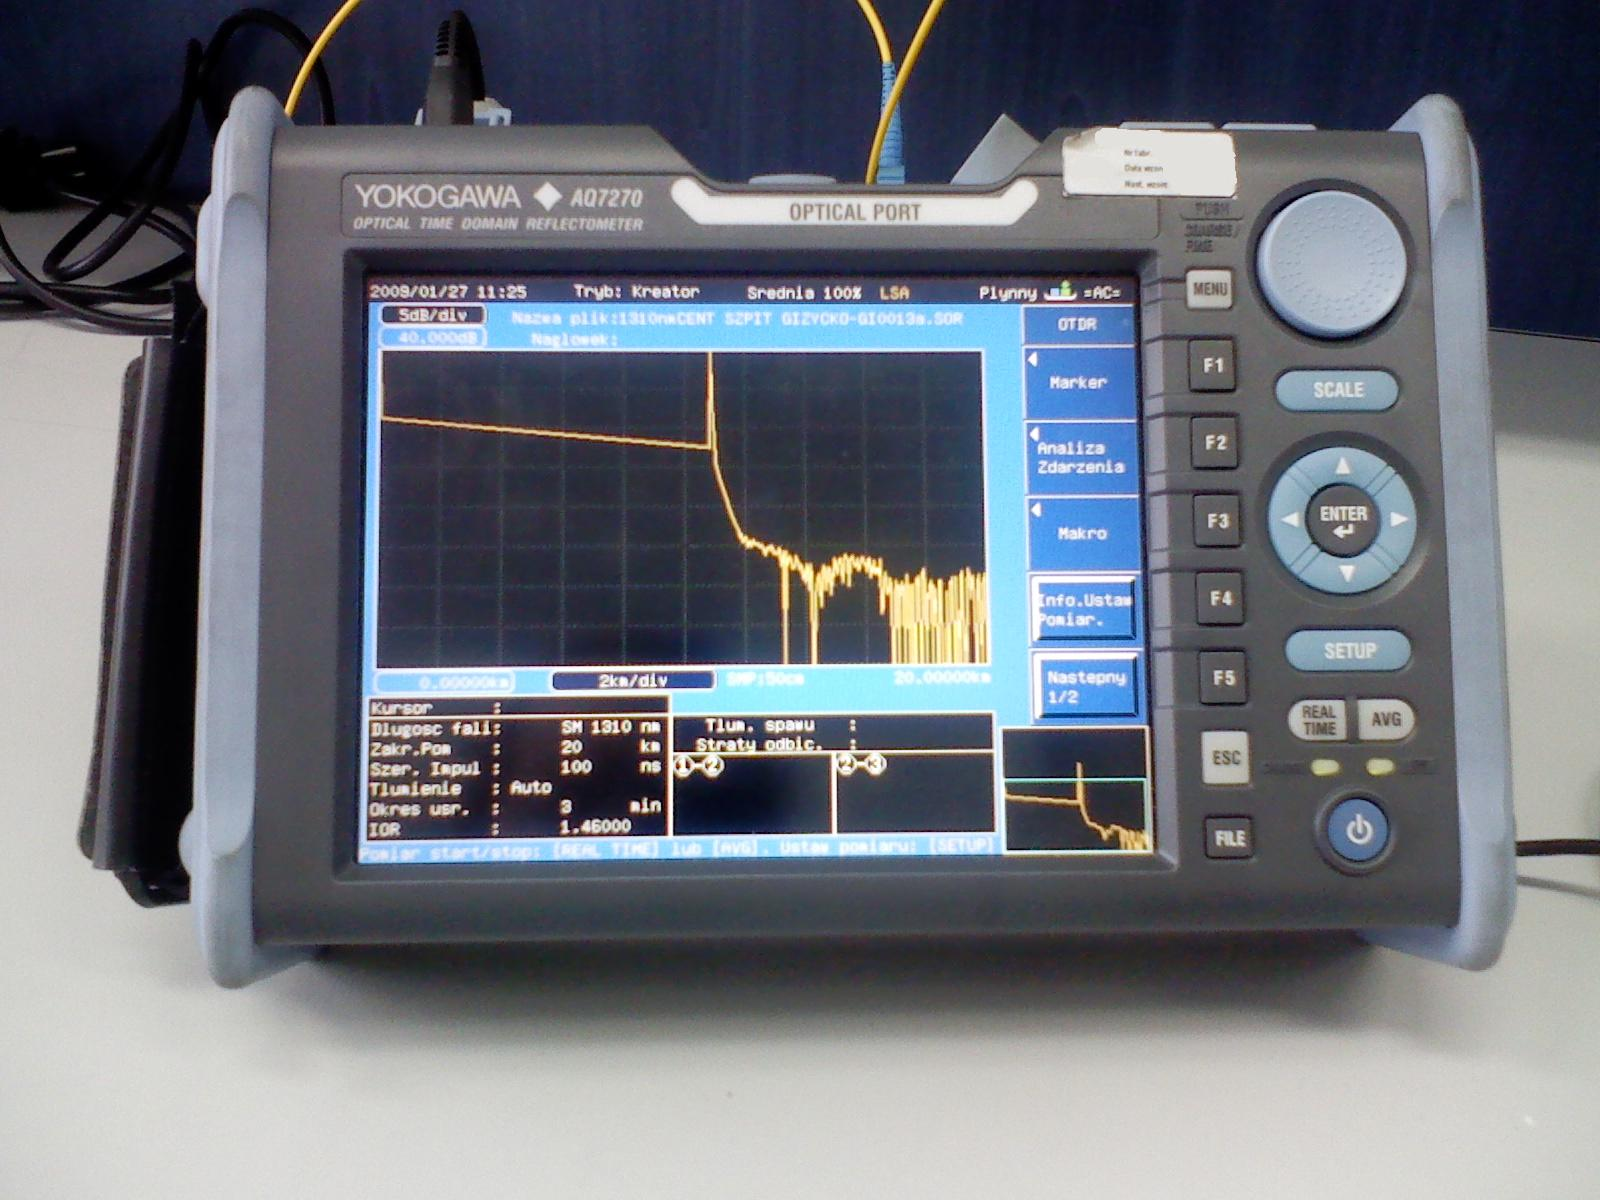 Time Domain Reflectometer : Optical time domain reflectometer wikipedia